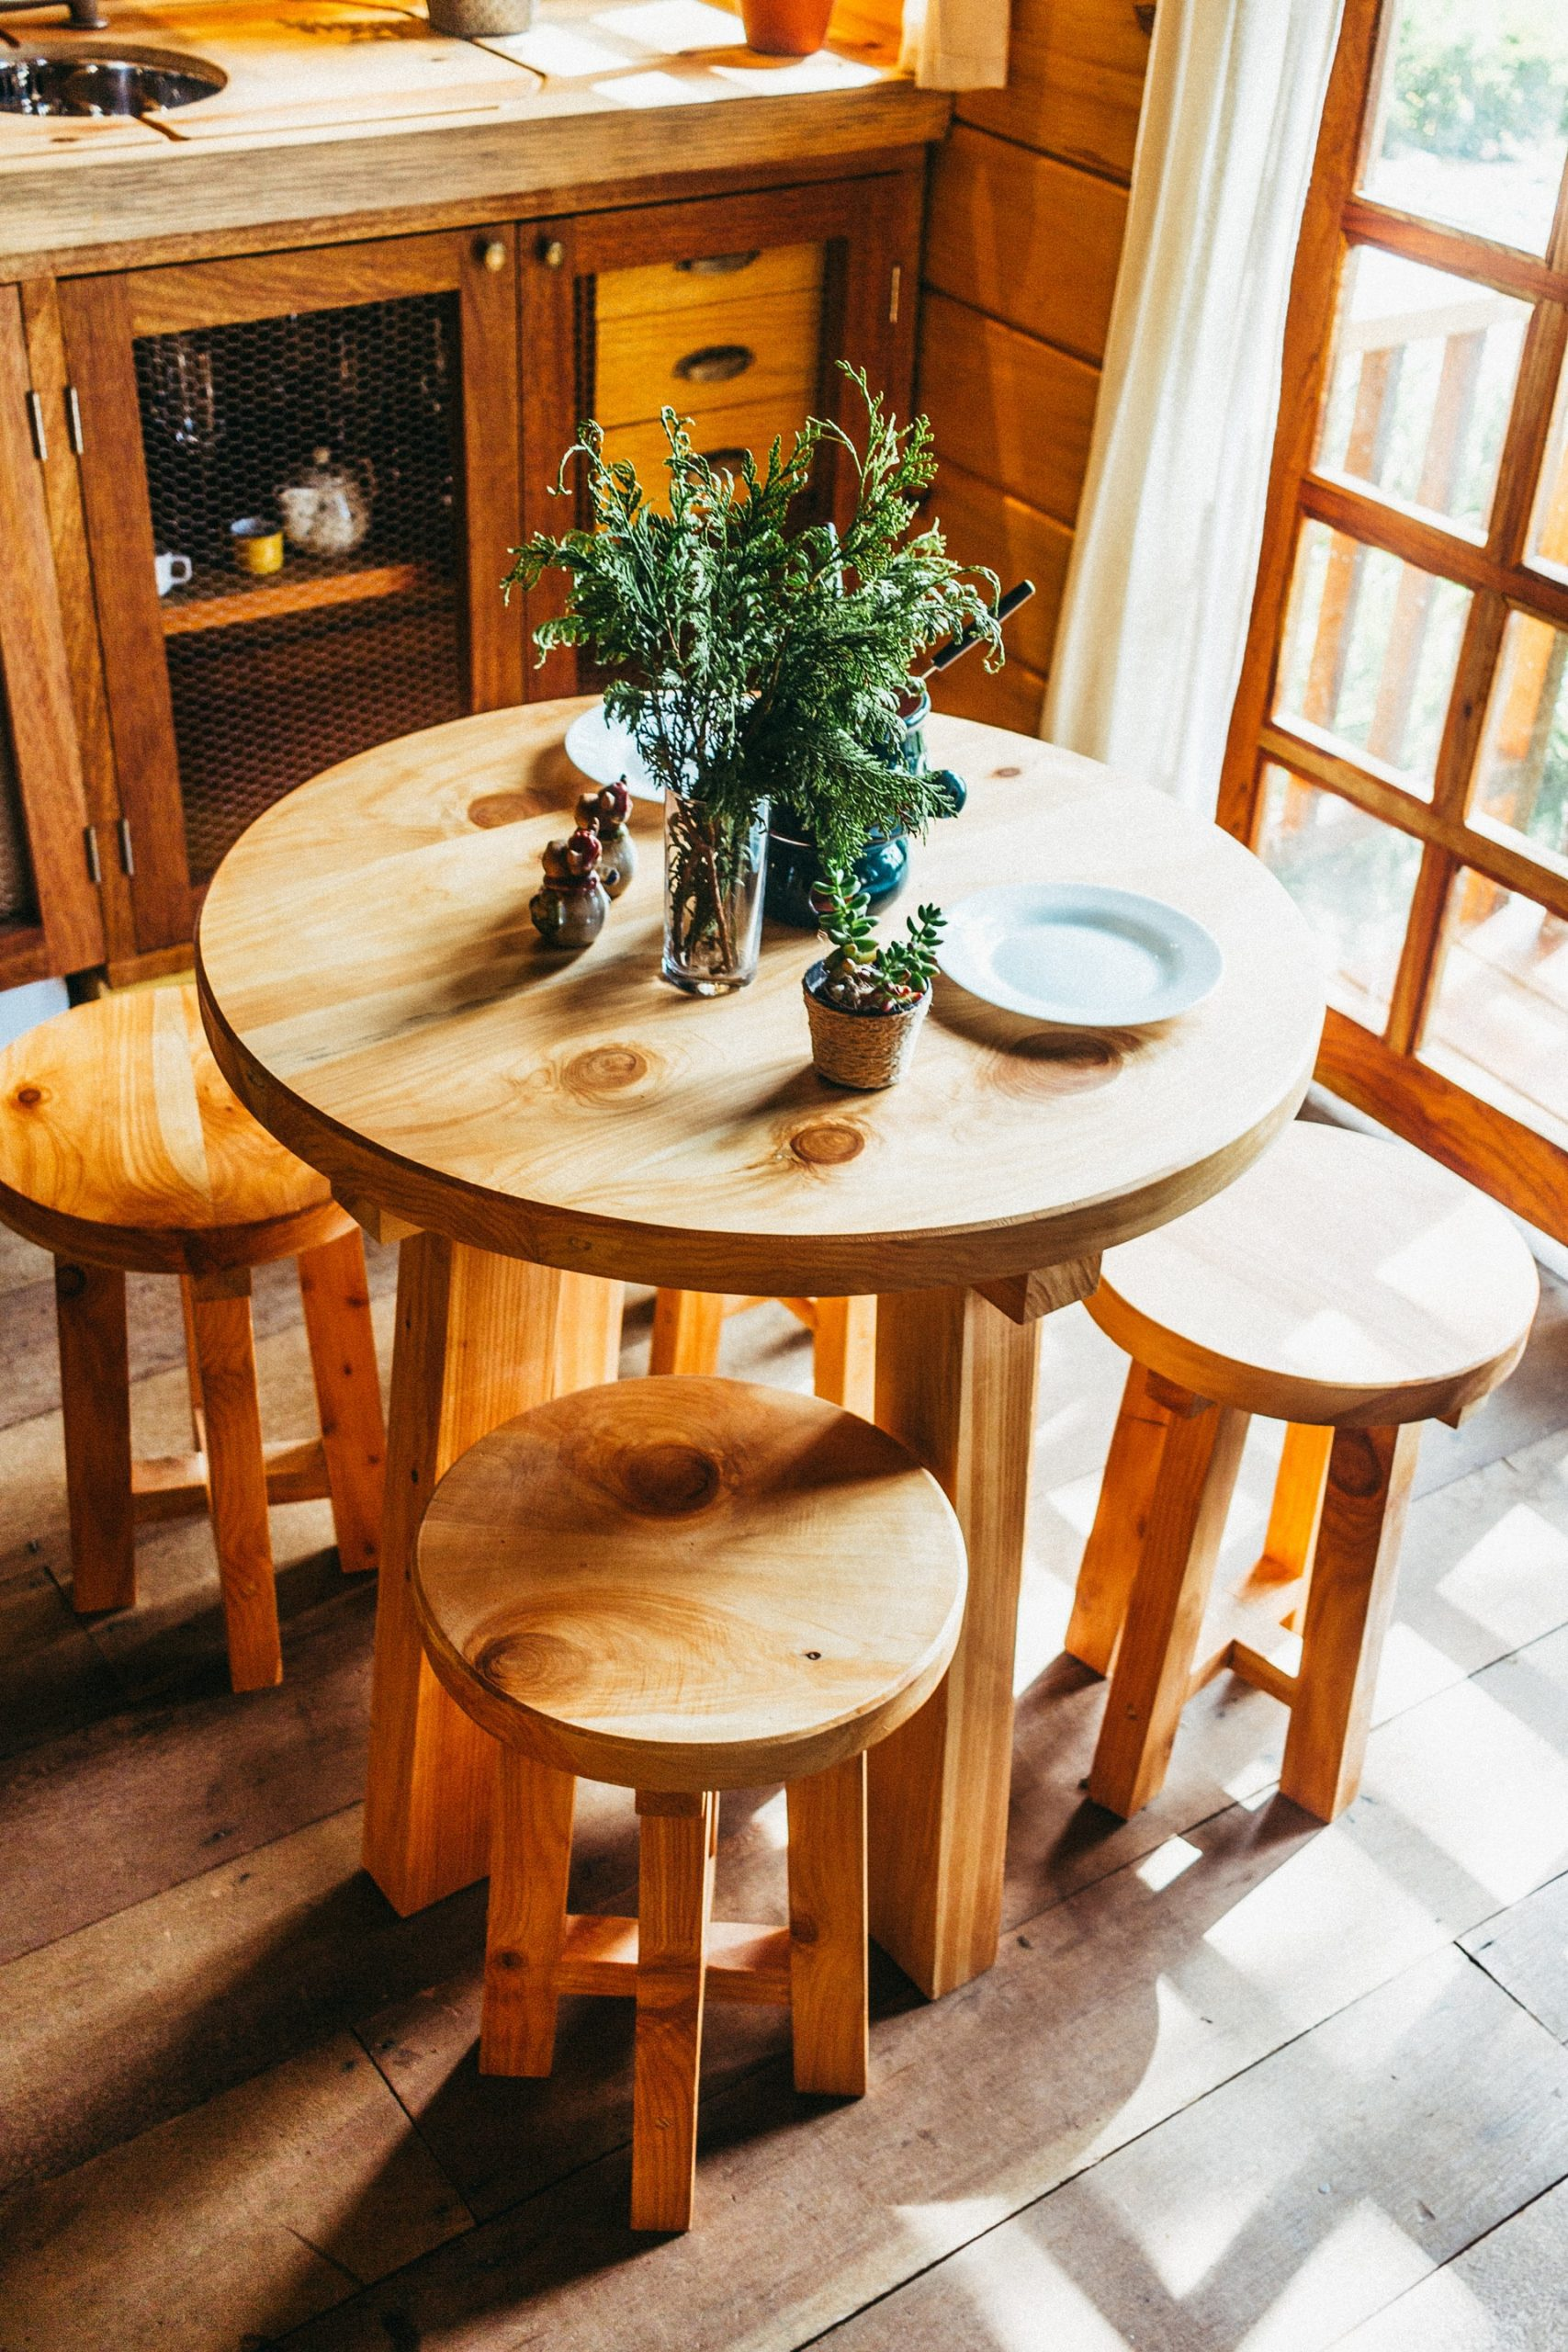 You are currently viewing Wood Furniture Cleaning Do's and Don'ts According to the Pros